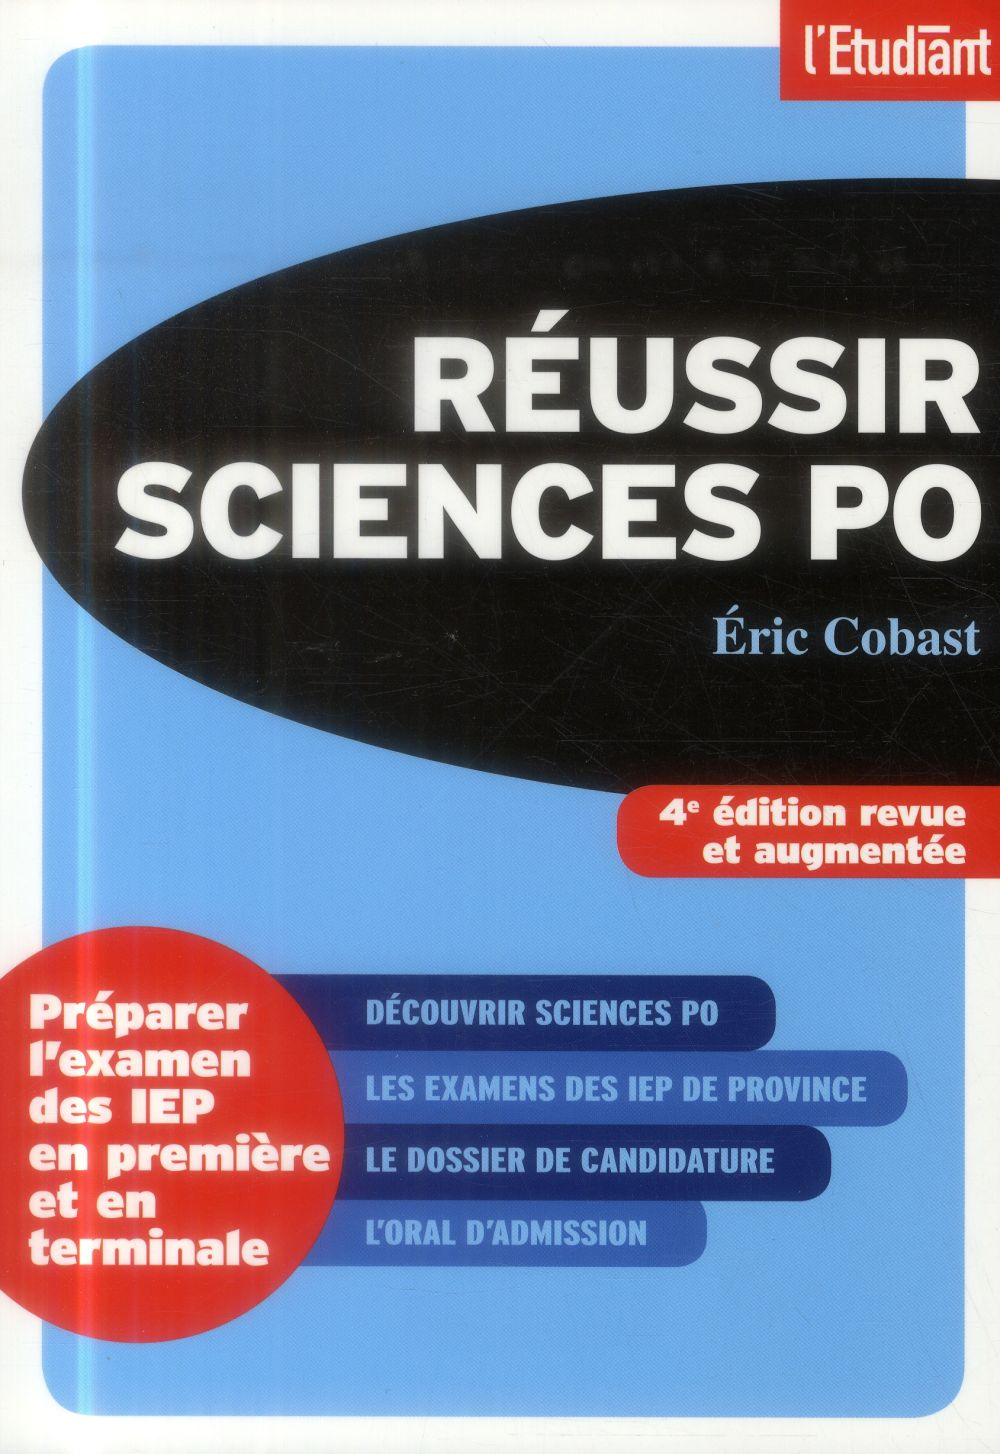 REUSSIR SCIENCES PO (4E EDITION)